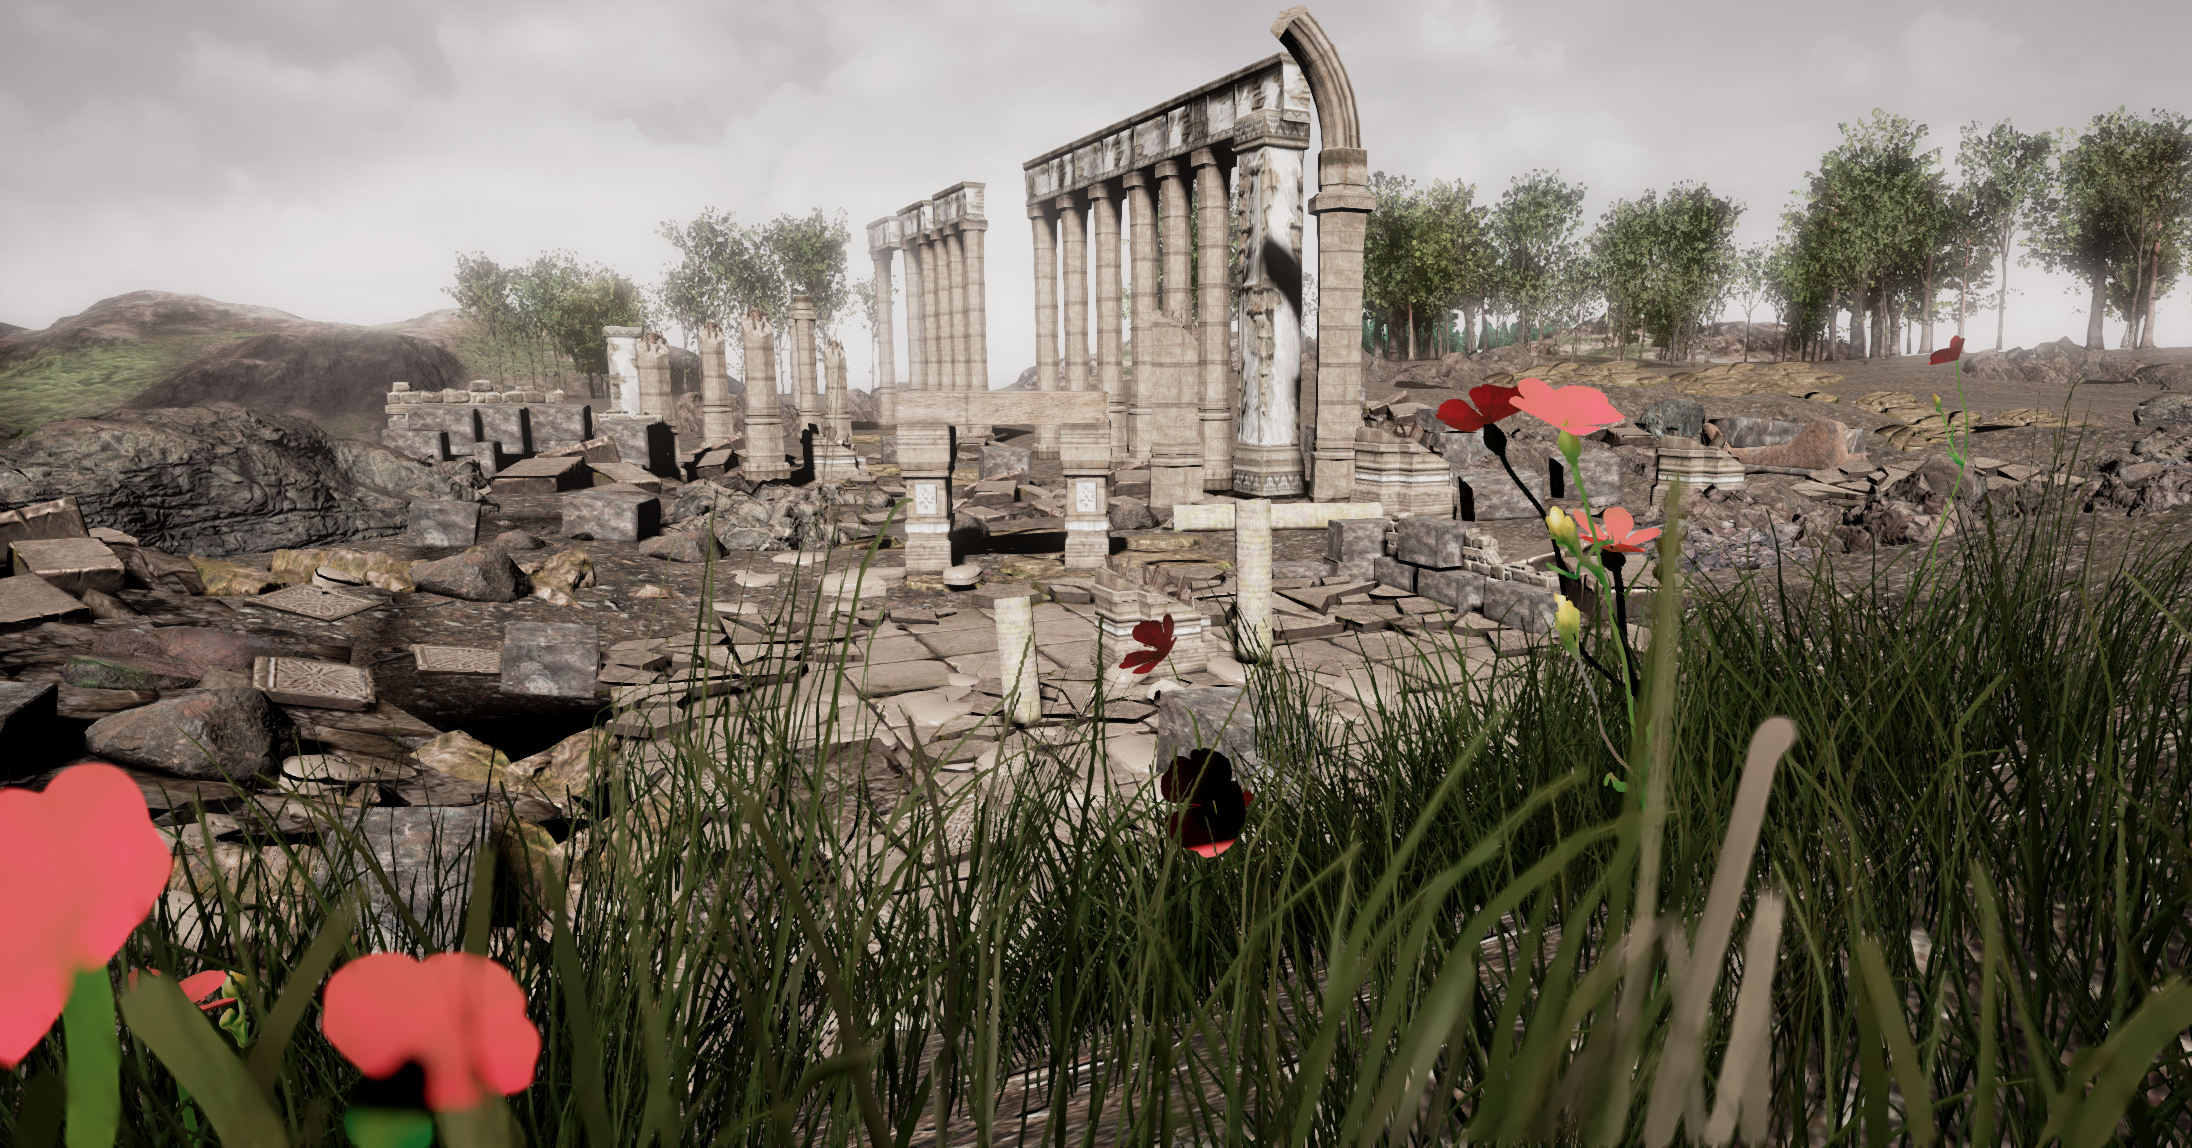 A high resolution screenshot after all post processing effects were implemented